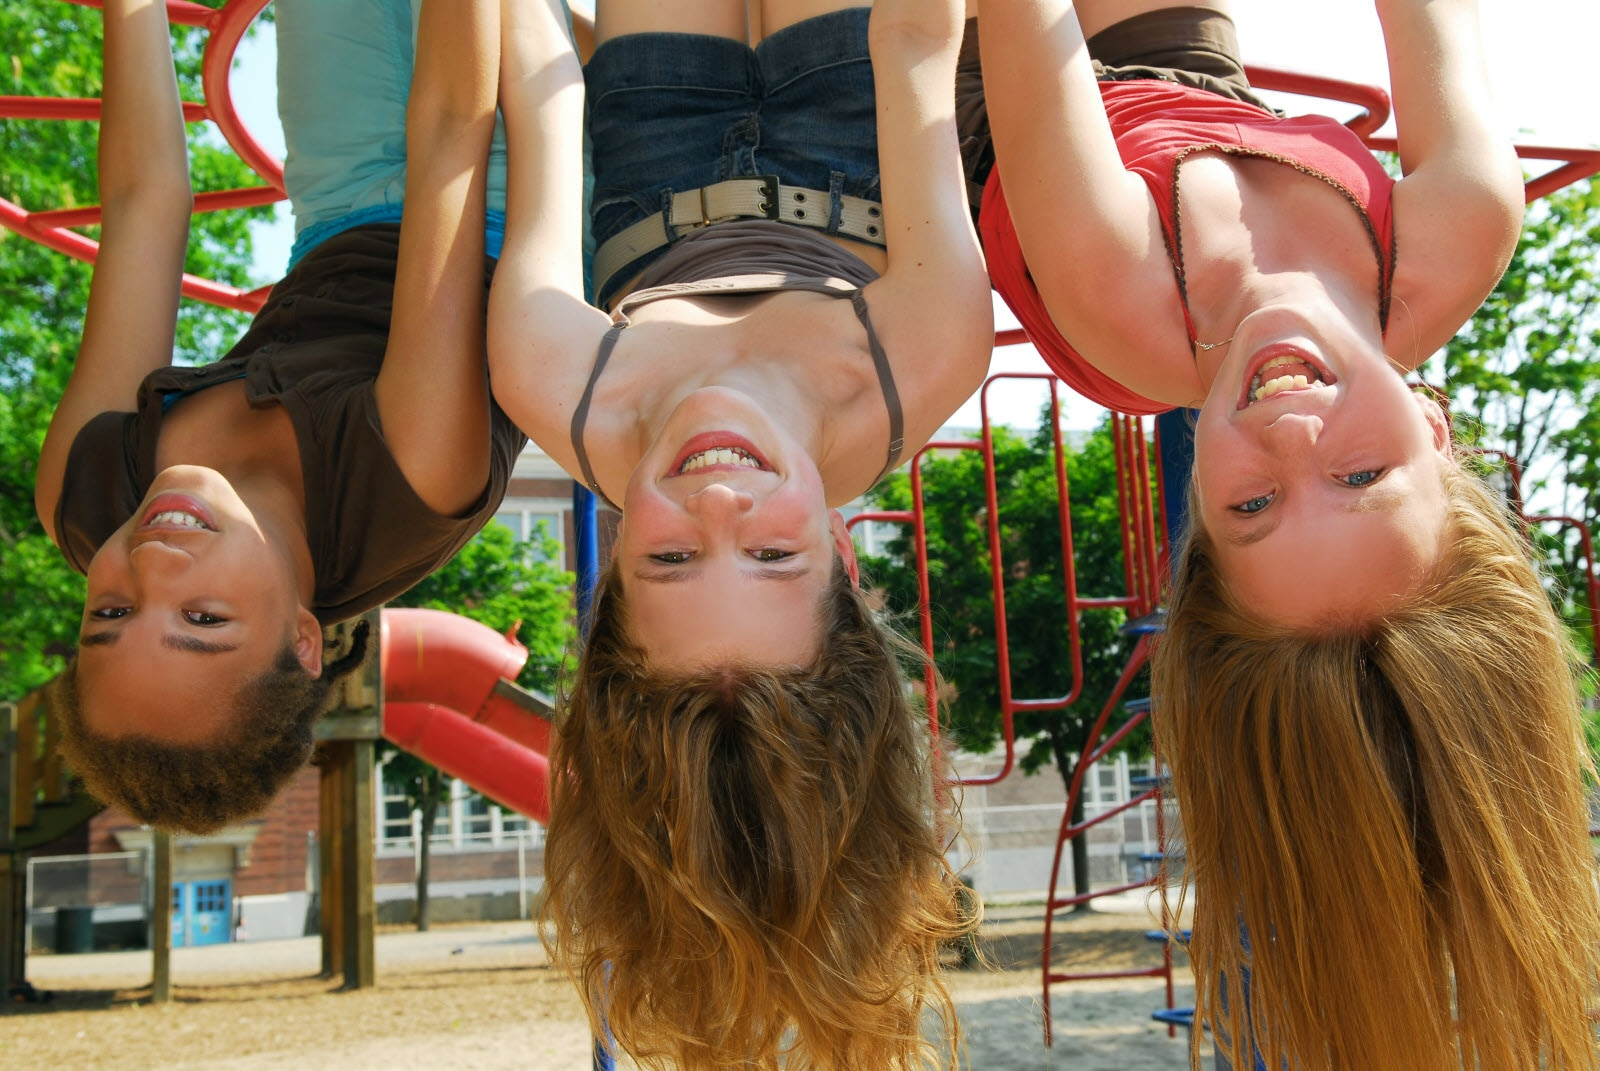 Three young girls hanging upside down in a park and laughing